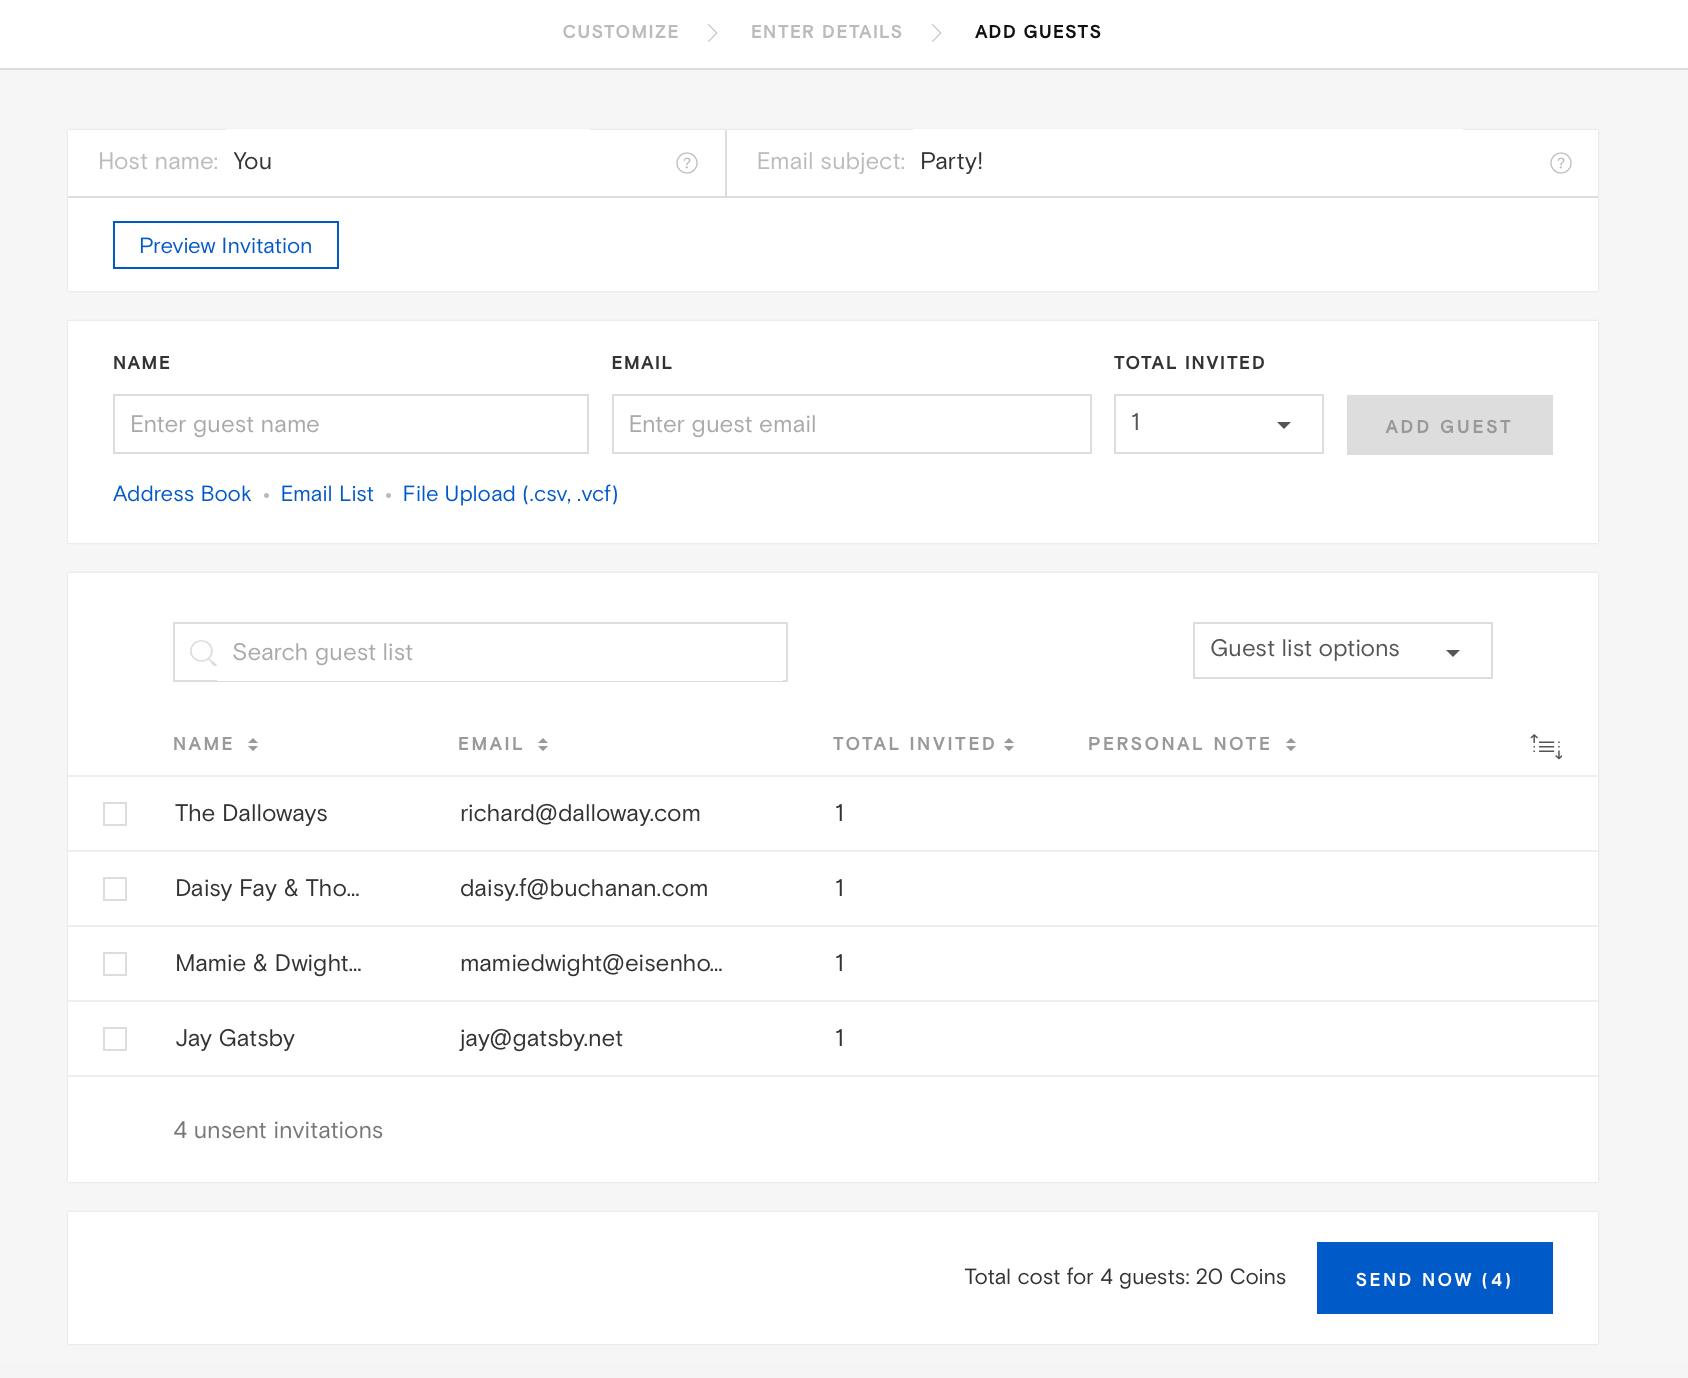 The Contacts Will Upload To Your Add Guest Delivery Page Automatically: